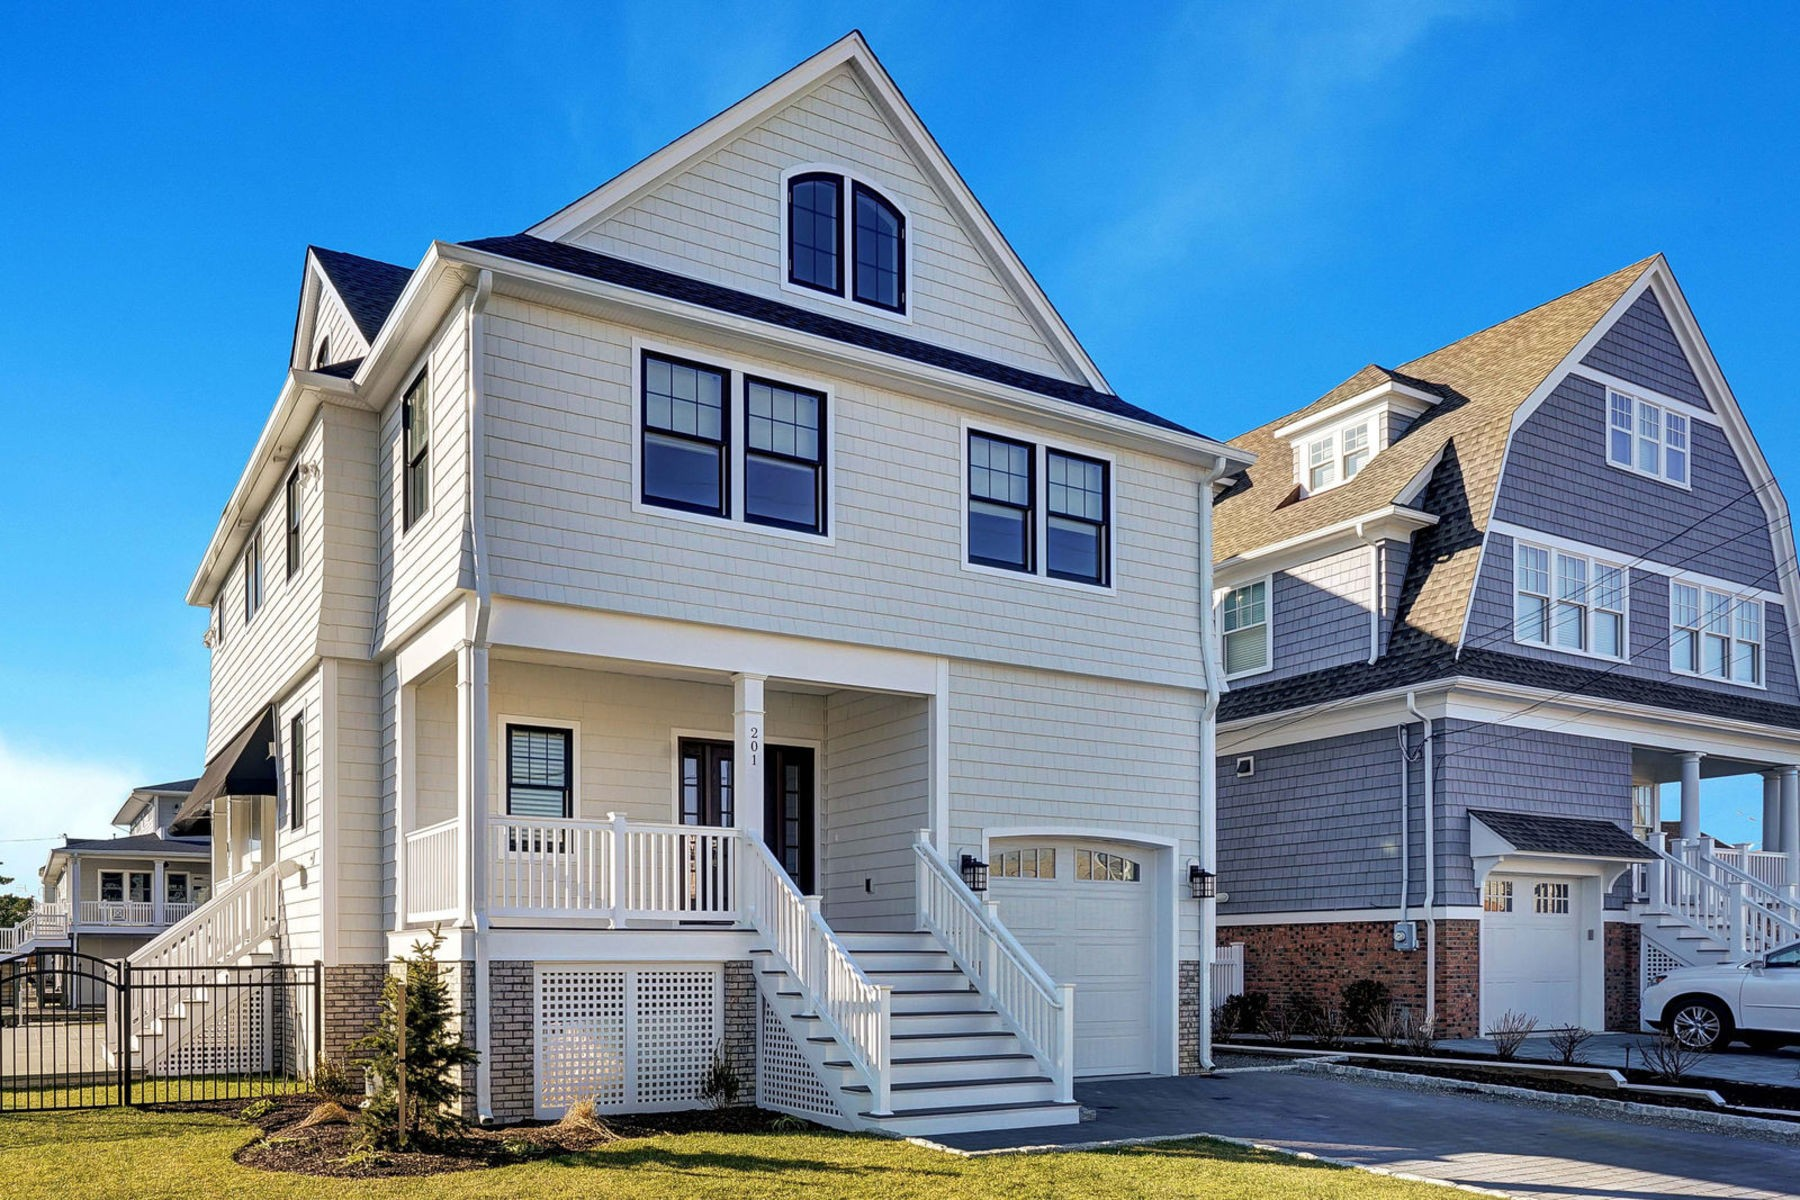 Moradia para Venda às Beautiful Custom Built Waterfront Home With Exceptional Finishes 201 4th Avenue, Normandy Beach, Nova Jersey 08739 Estados Unidos